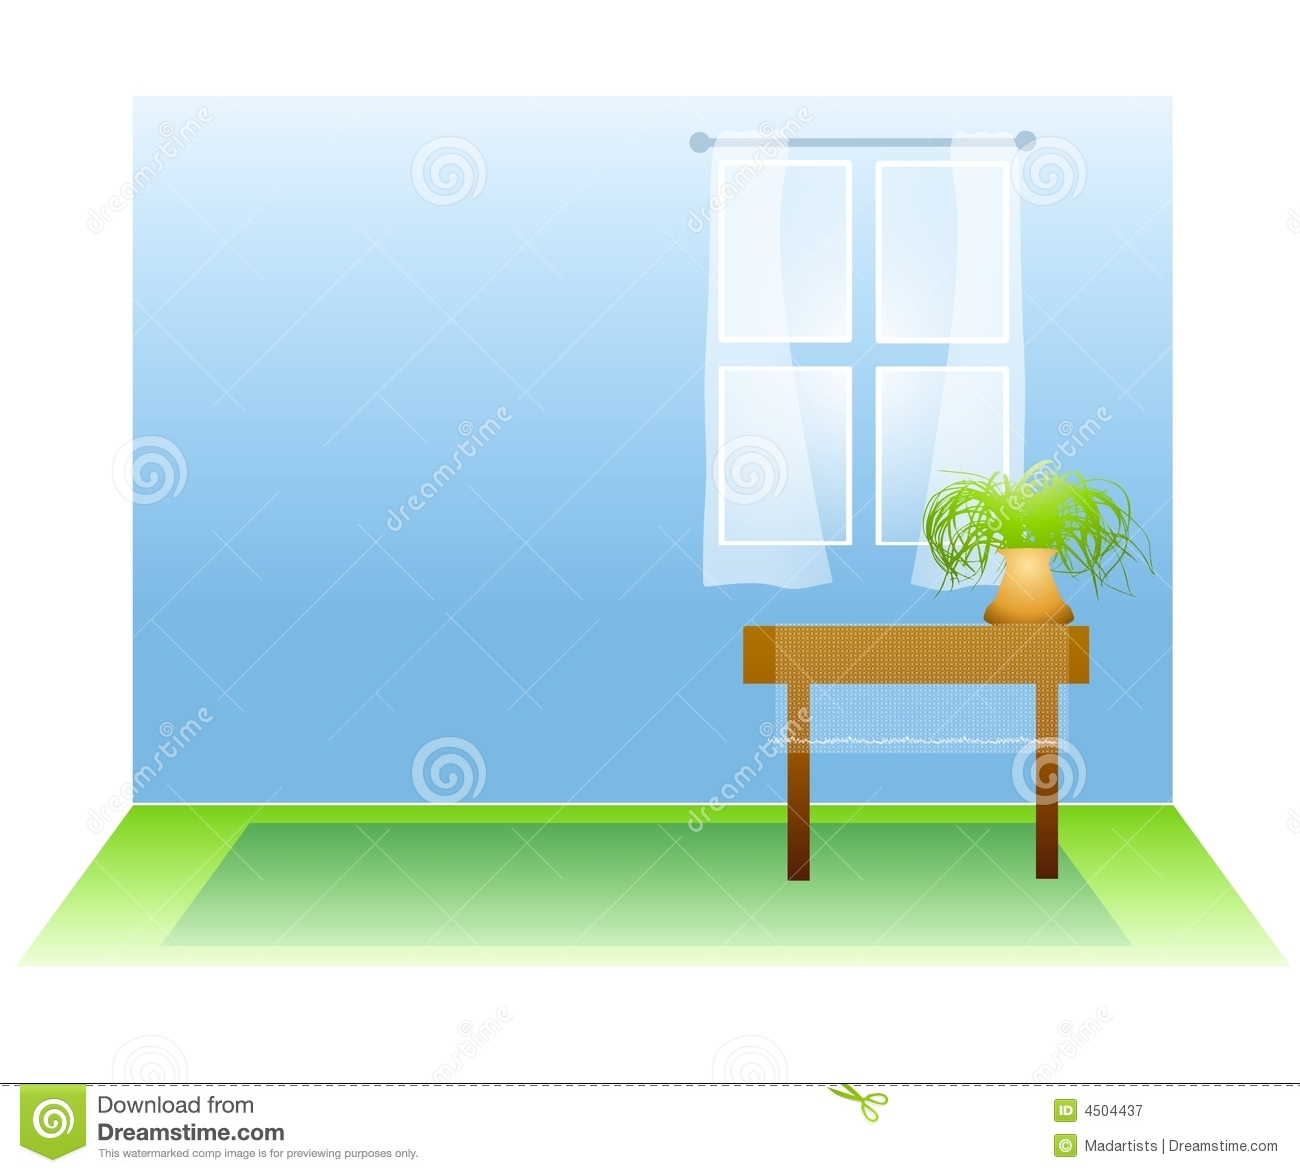 Bedroom Additions Floor Plans Empty Room With Window And Plant Royalty Free Stock